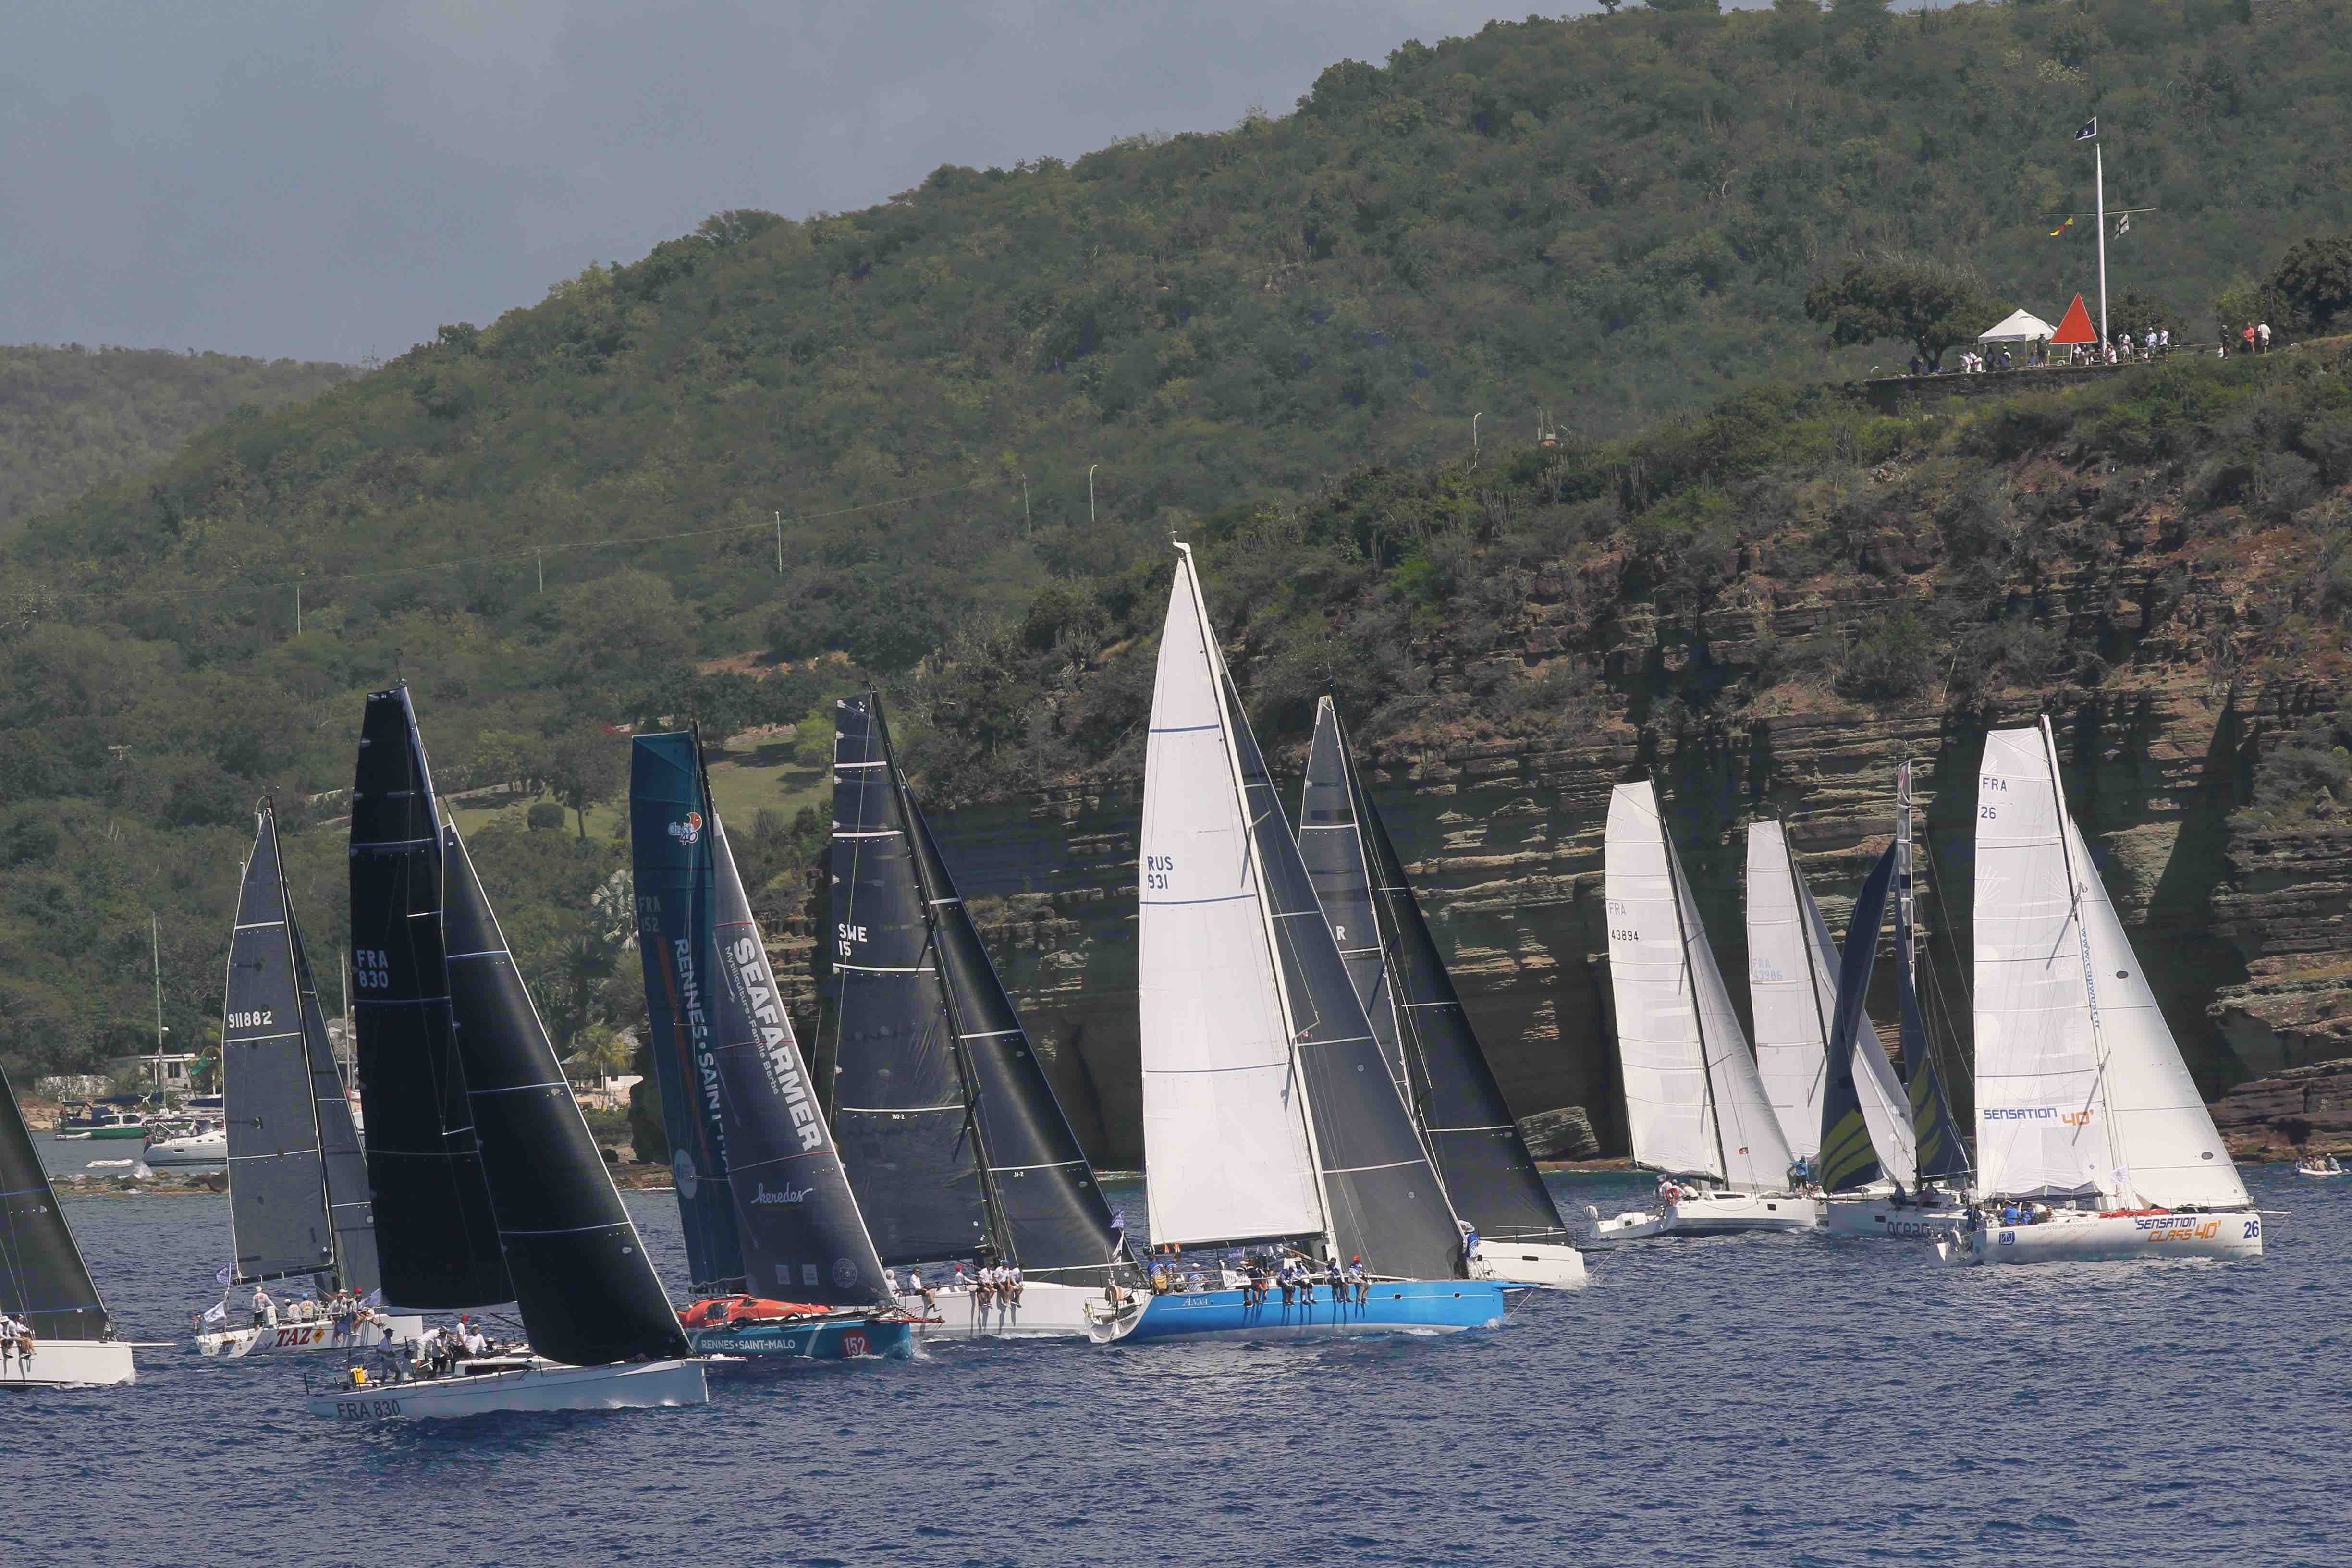 73 boats took the start in Antigua for the 12th edition of the RORC Caribbean 600 © Tim Wight / photoaction.com